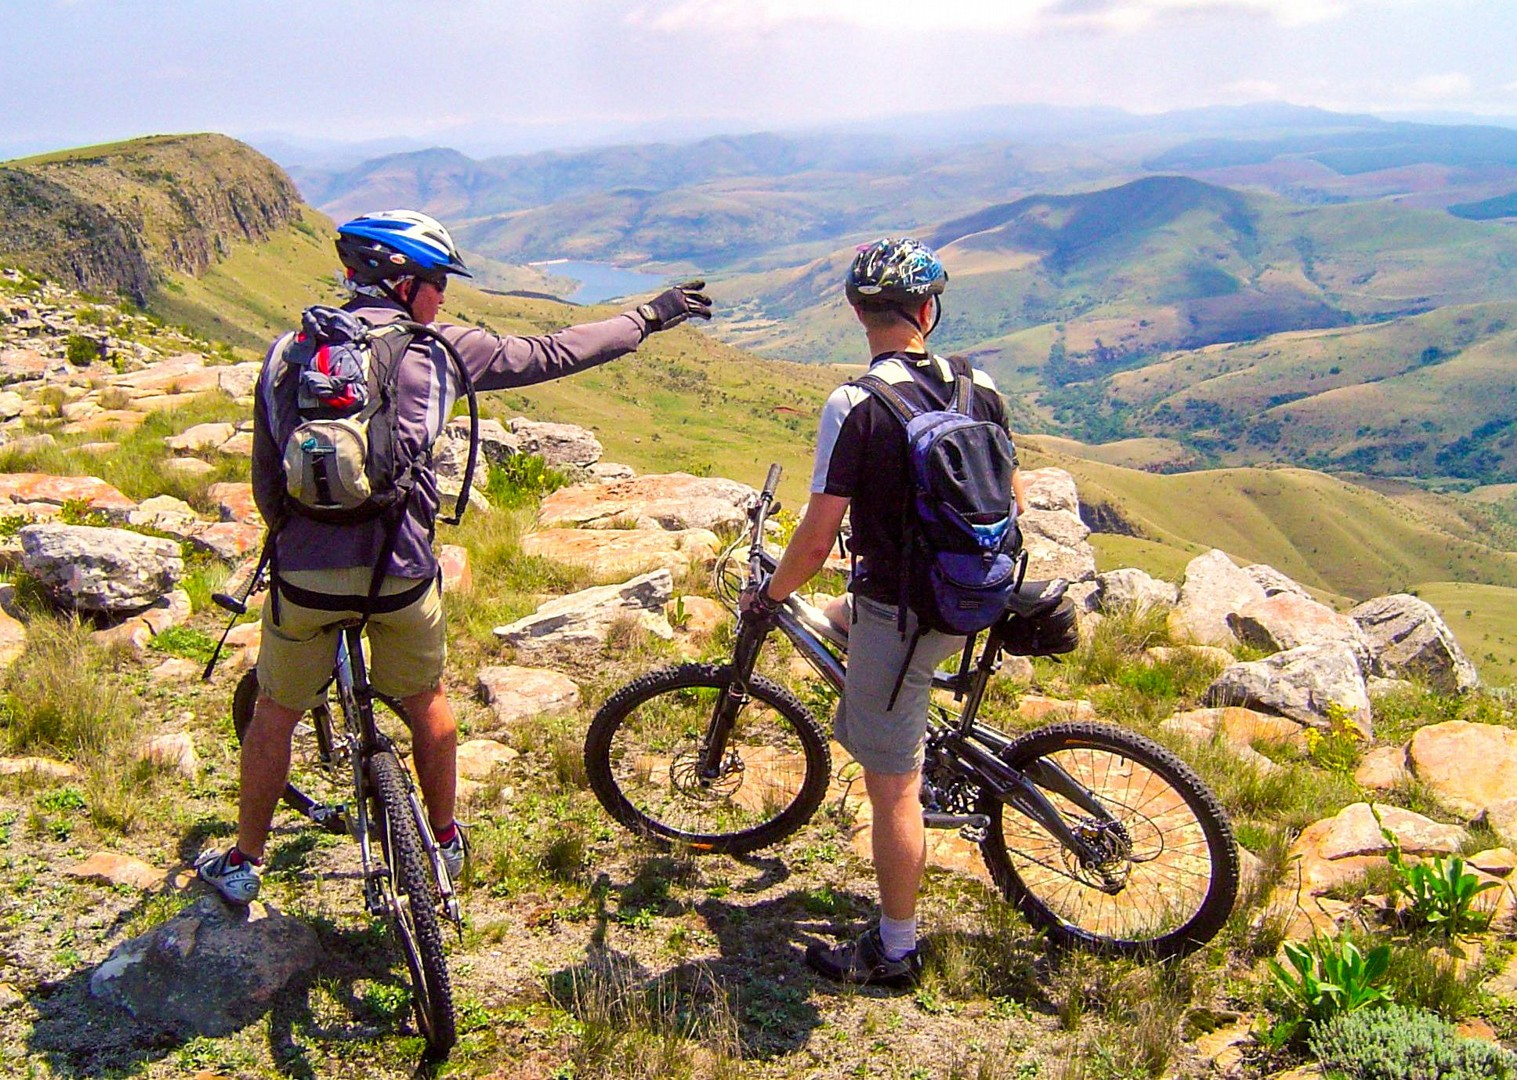 riding-mountain-biking-south-africa-and-botswana-mountains-saddle-skedaddle.jpg - NEW! South Africa and Botswana - Mountain Biking